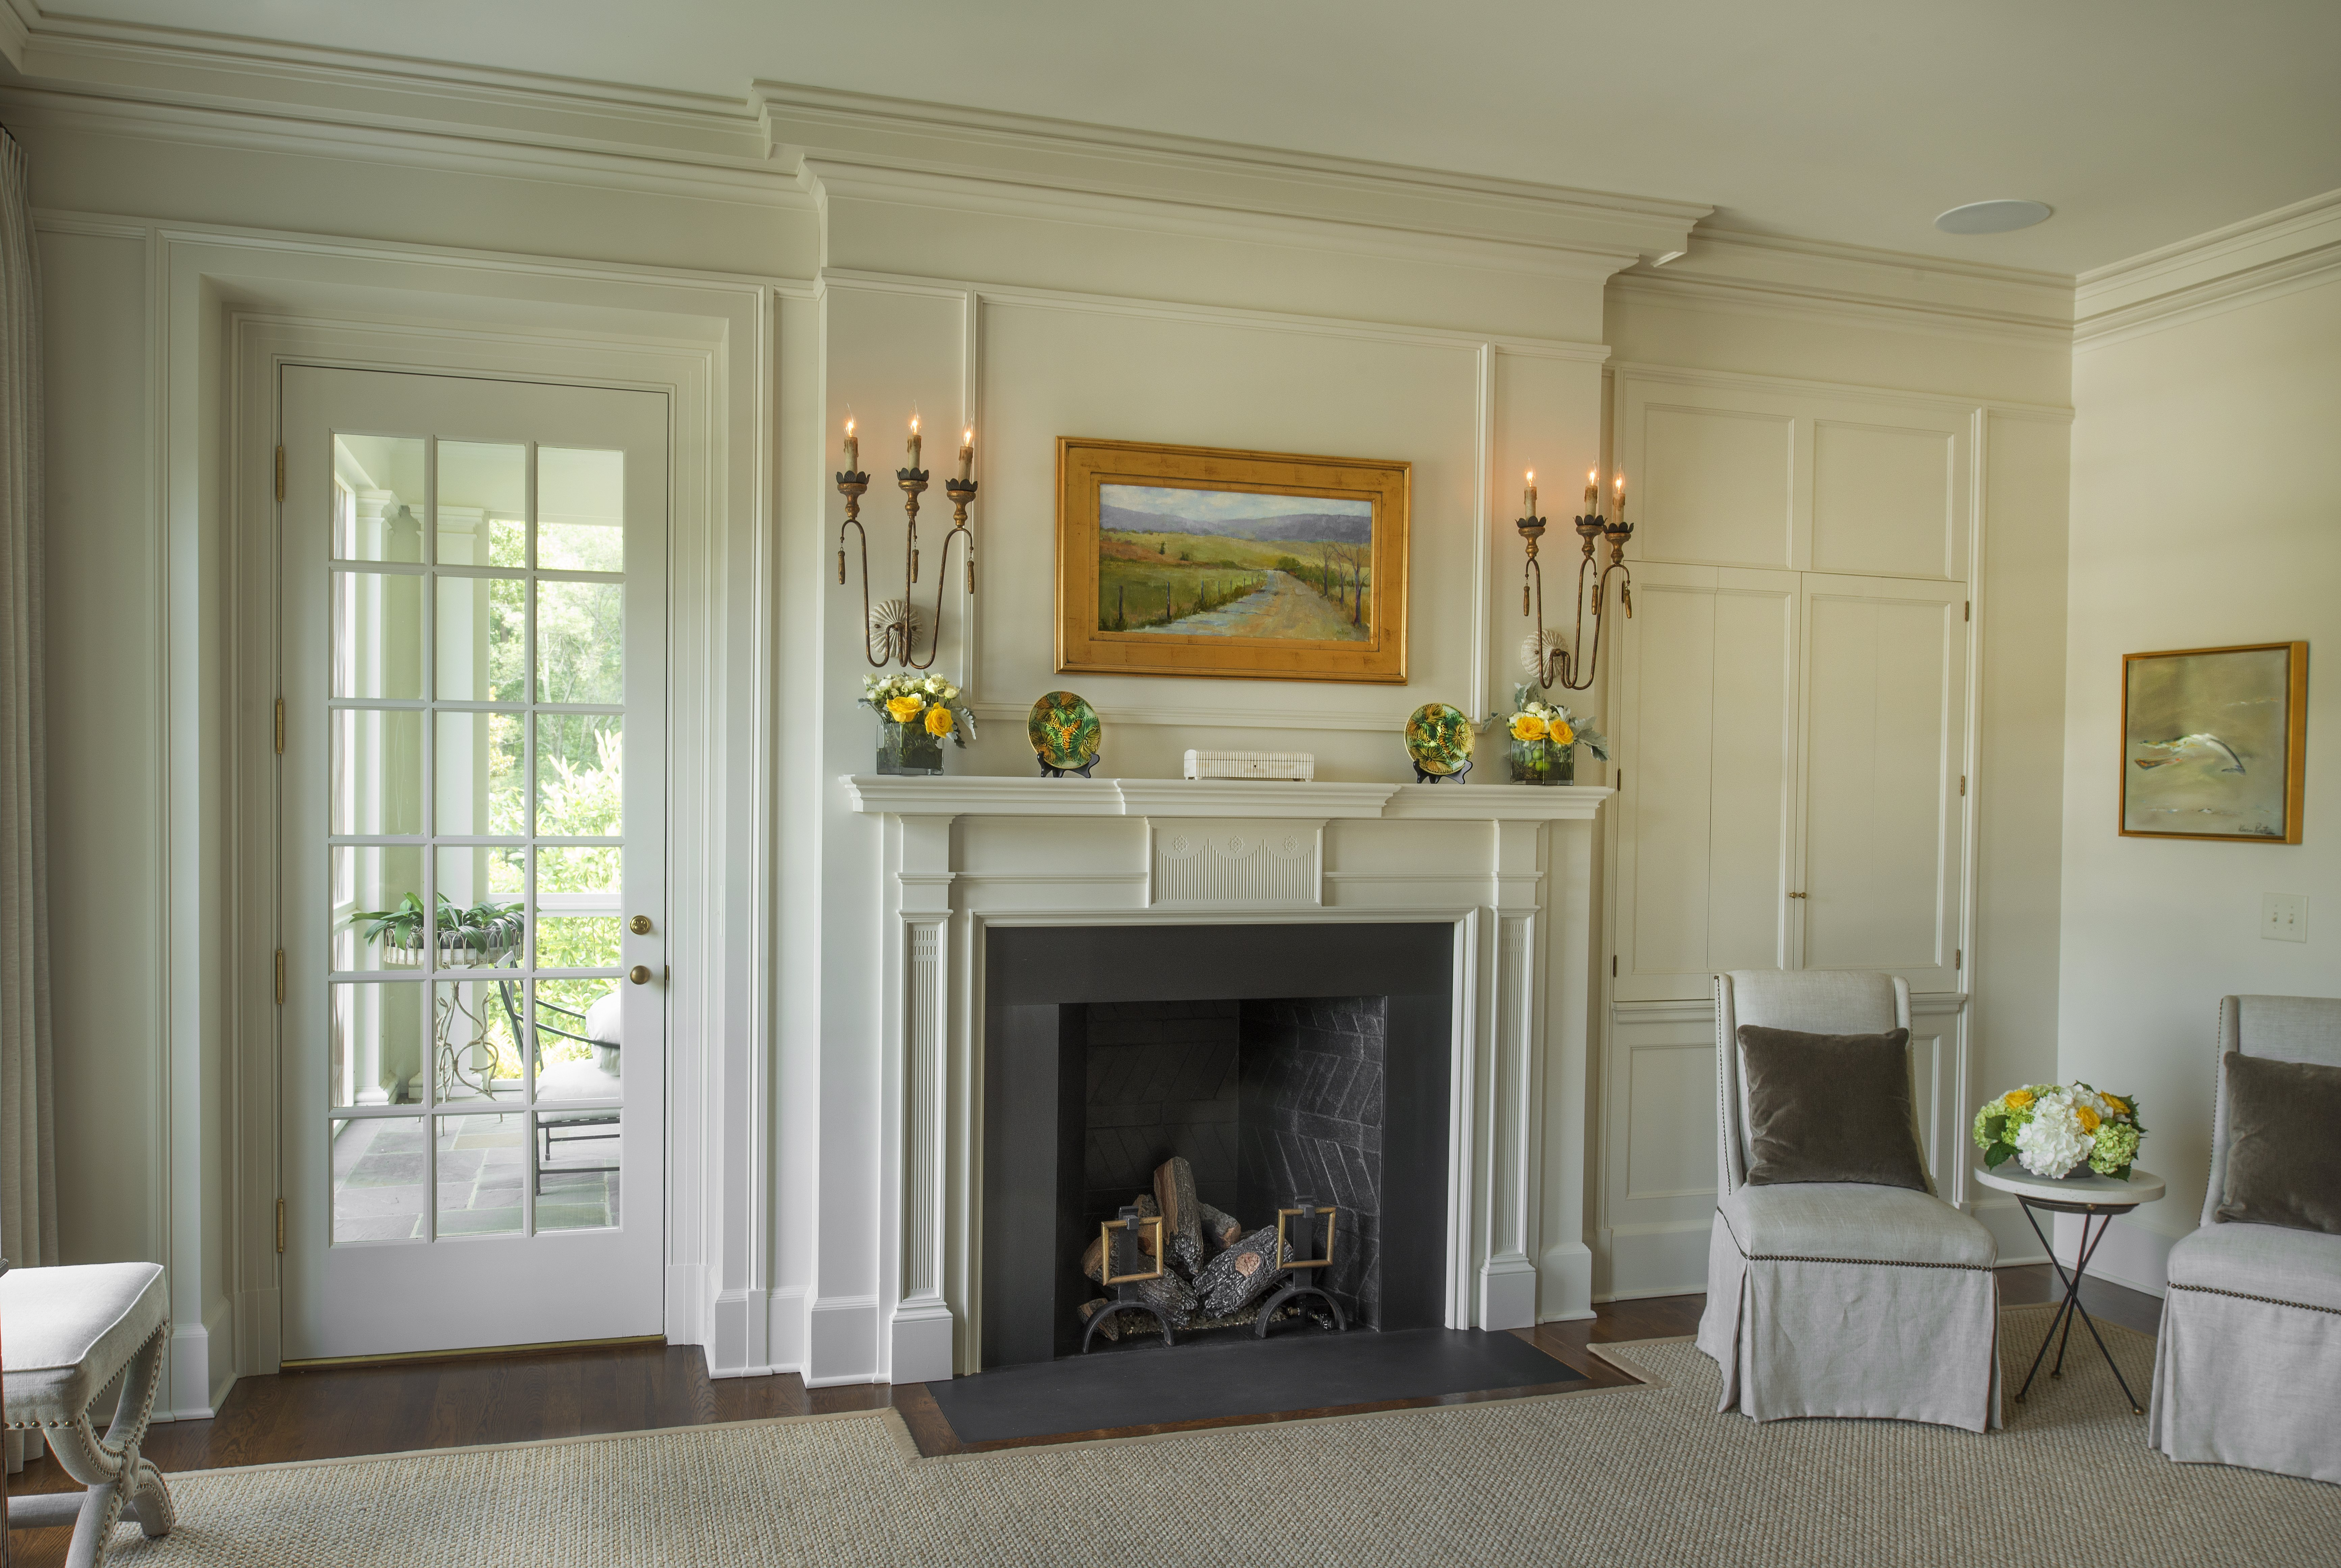 Period Revival Homes | Home Architecture | James S. Collins, Architect